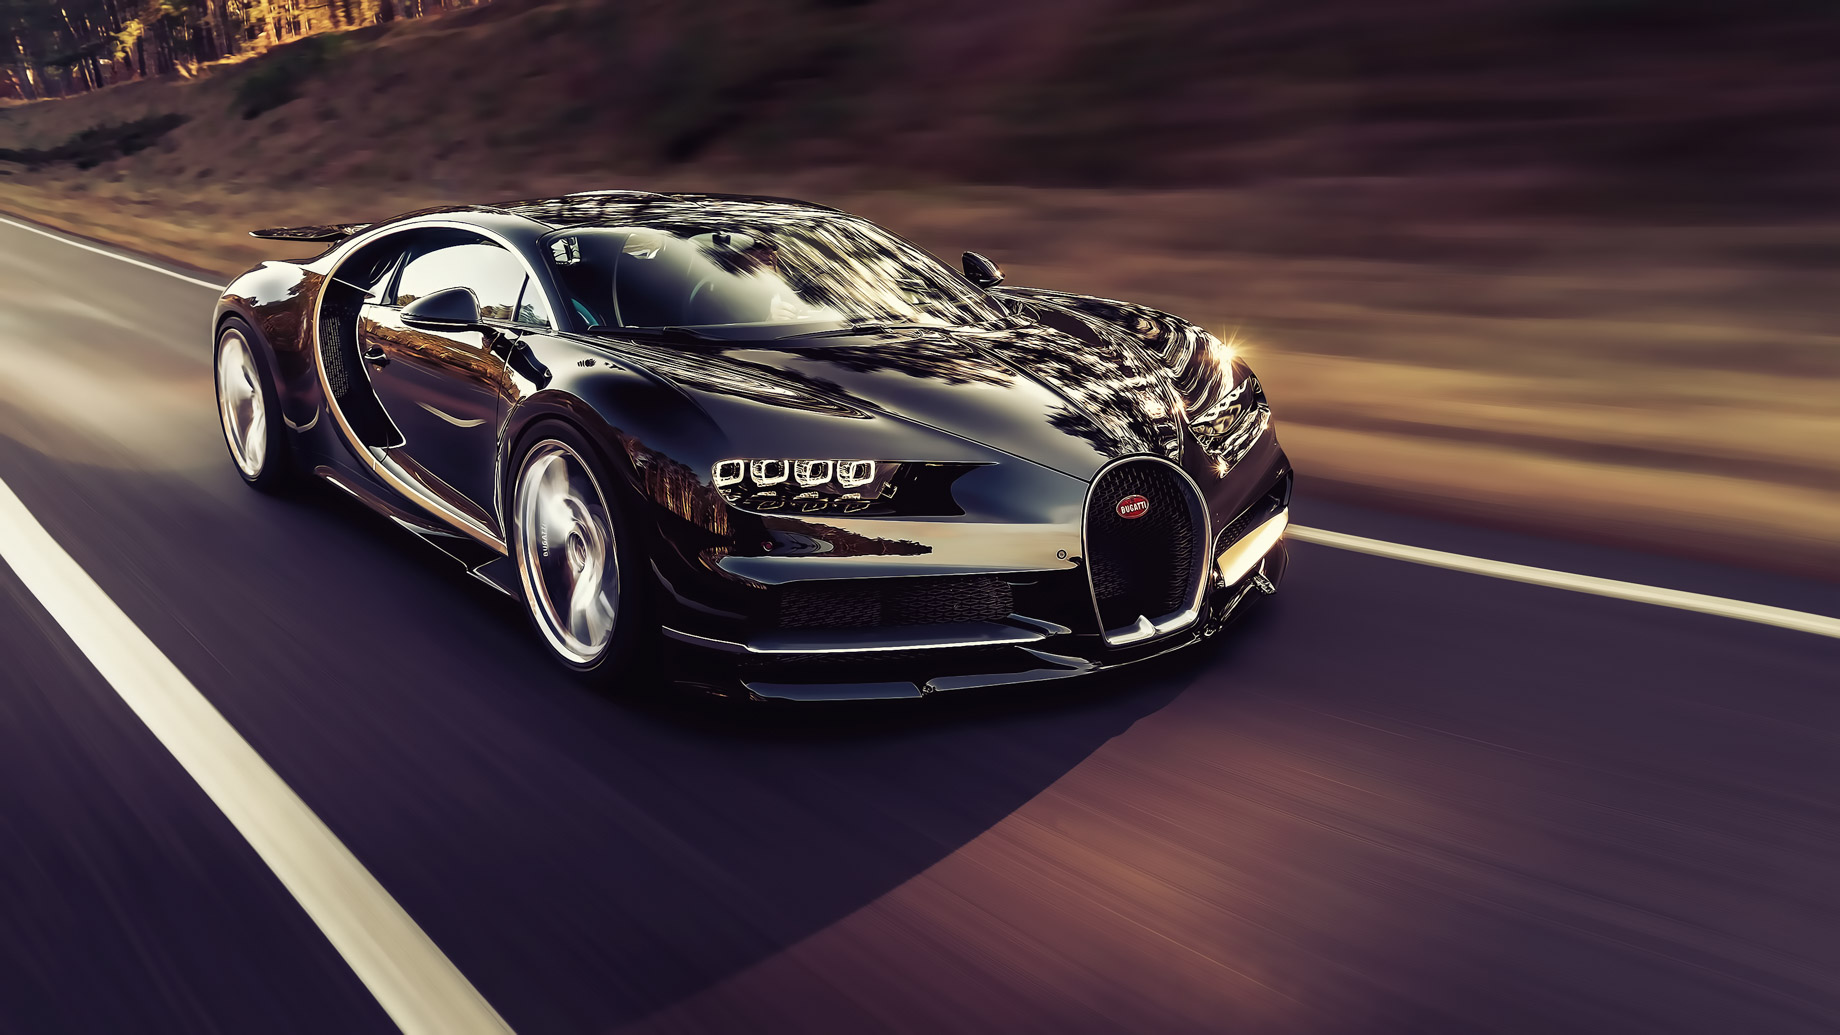 Bugatti Chiron - Dreaming Big - 6 Luxury Items You Could Purchase if Money Was No Object